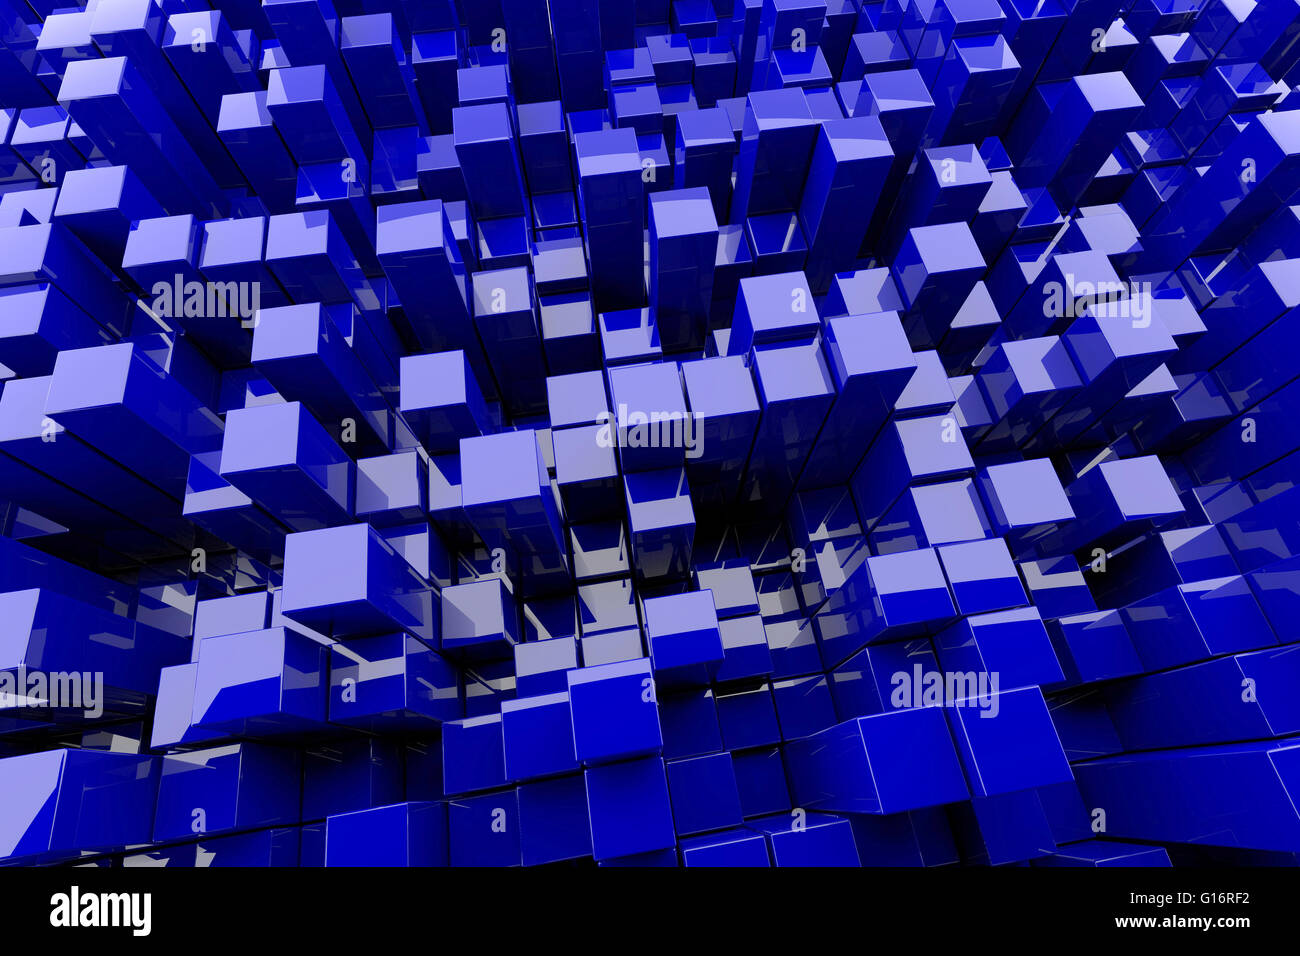 Abstract 3d Illustration Of Basckground With Blue Blocks At Left ...